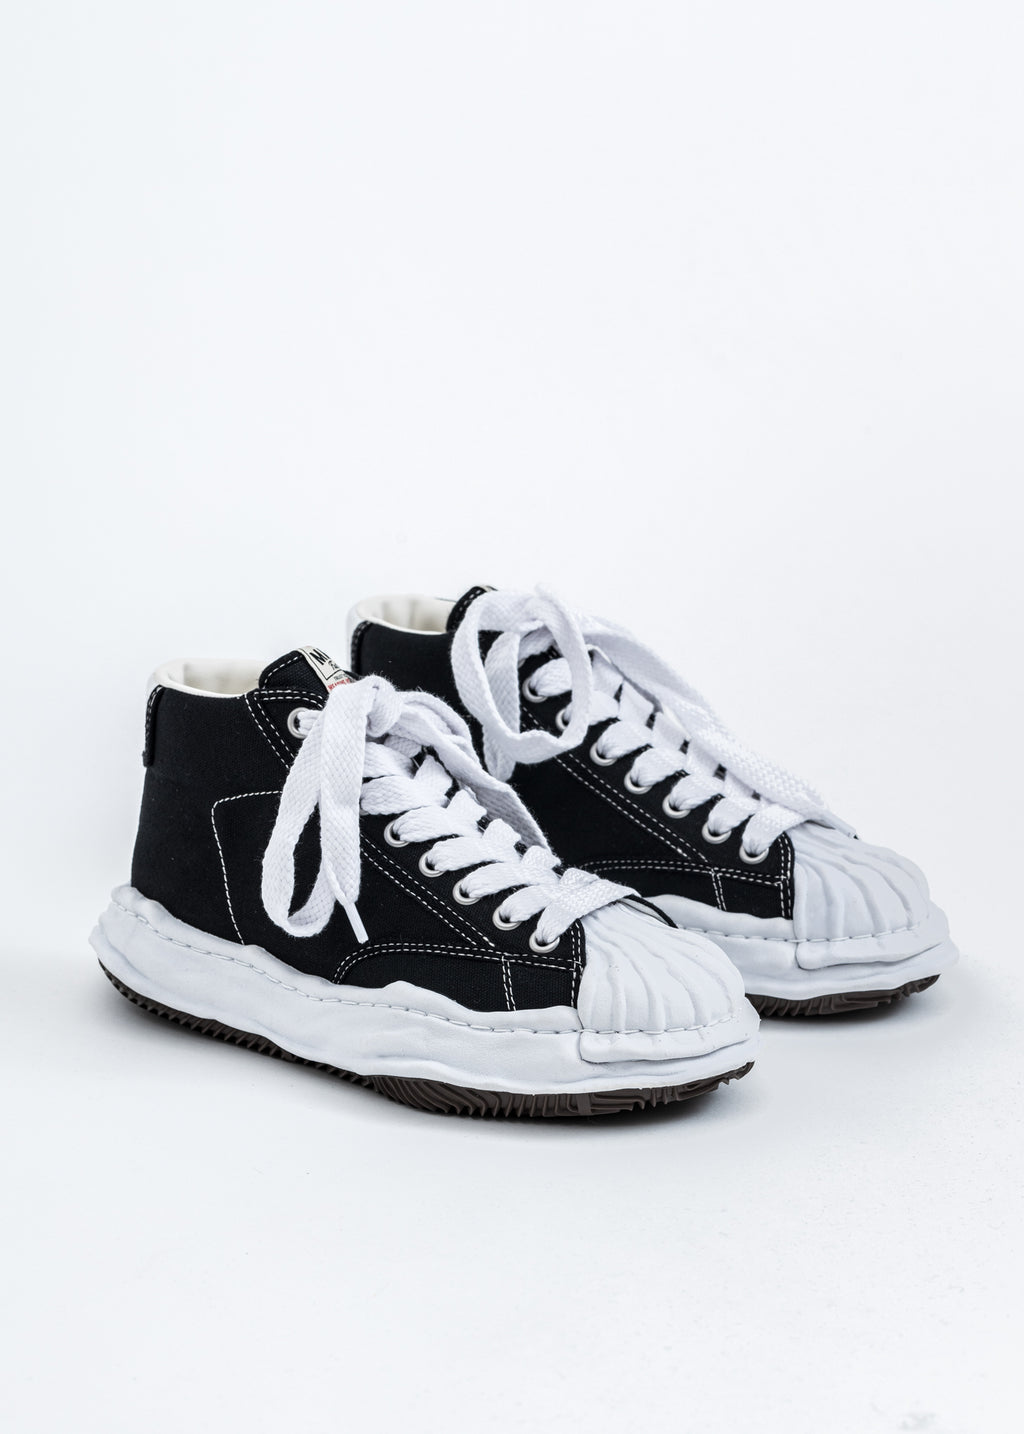 Black Original STC Sole Canvas Hitop Sneaker